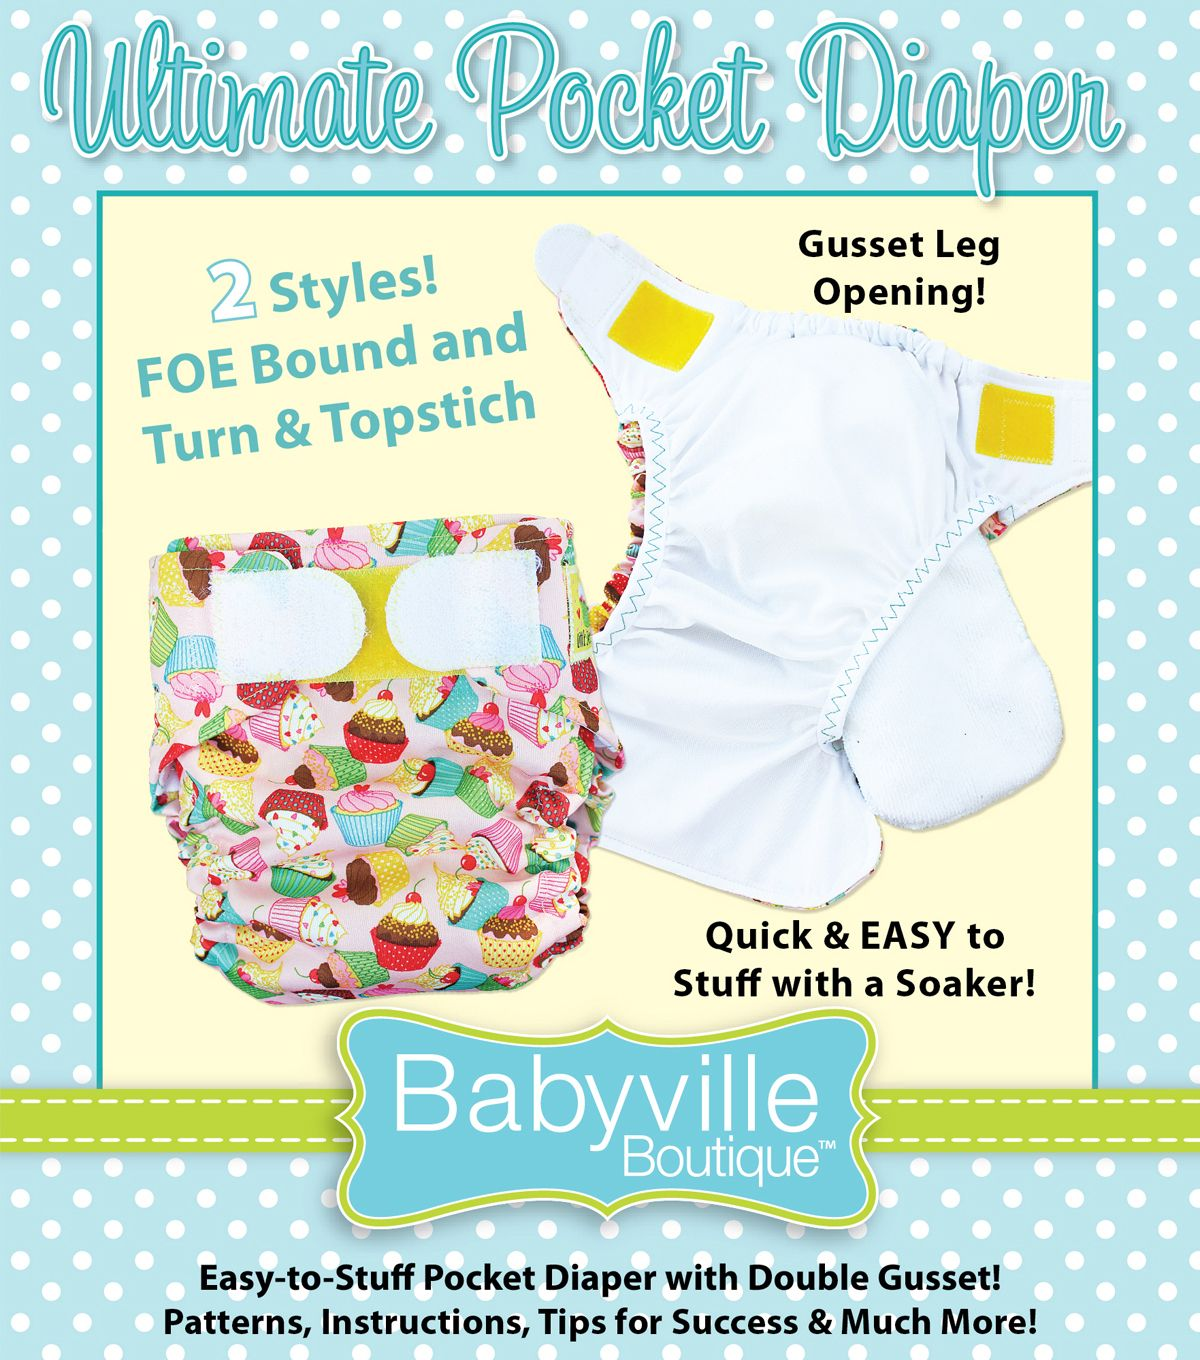 Diy pocket diapers from babyville boutique sew cute cloth diy pocket diapers from babyville boutique sew cute cloth diapers jeuxipadfo Image collections